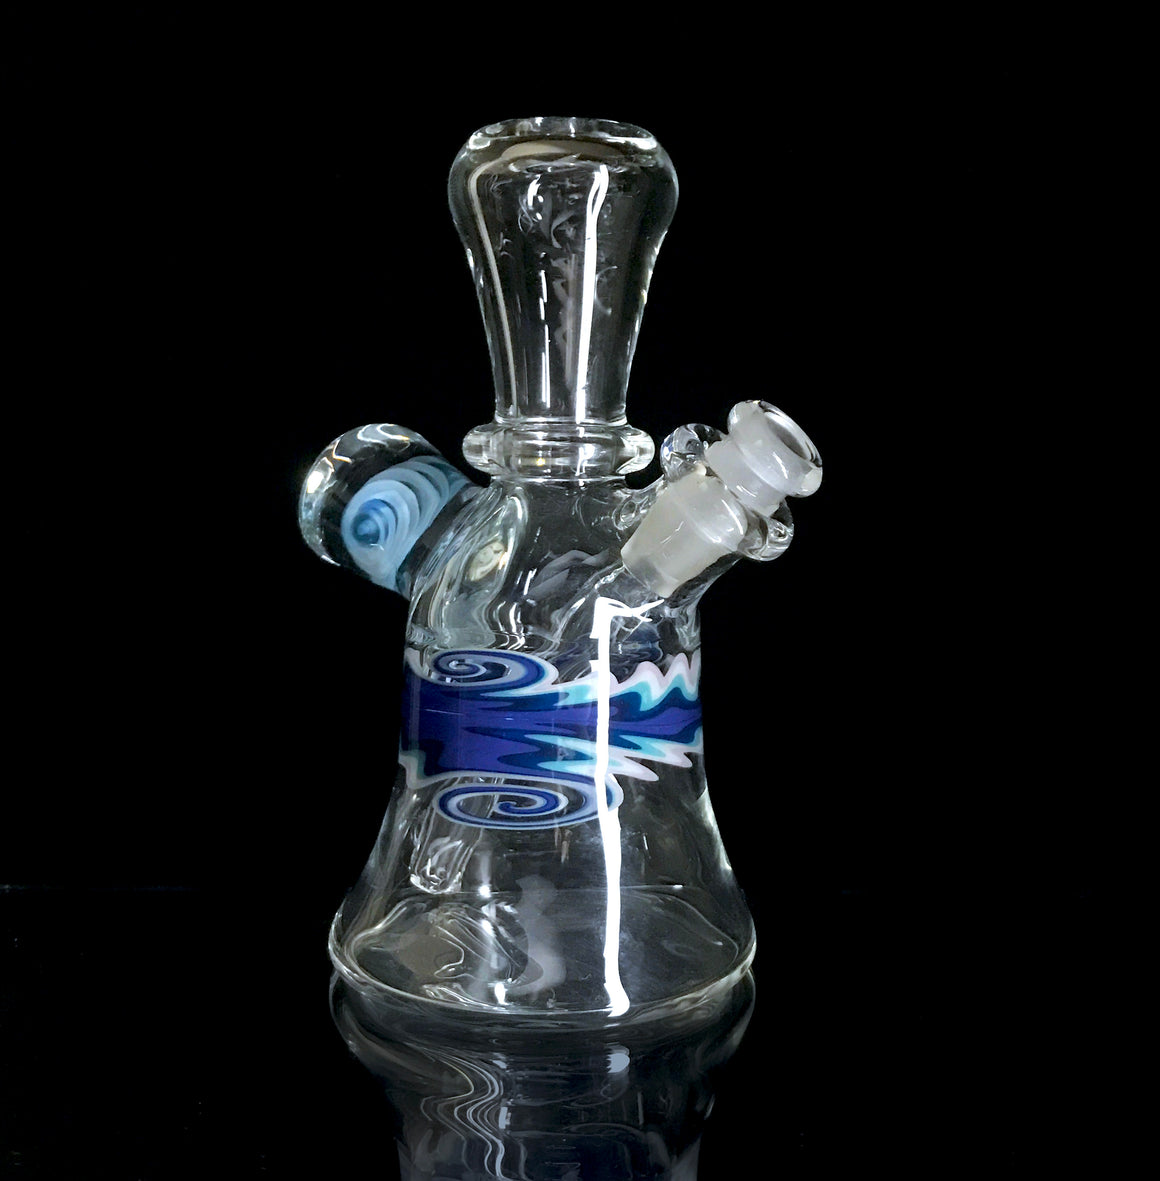 Fully-worked Mini Tube - Clear/Blue Linework - 10mm Female